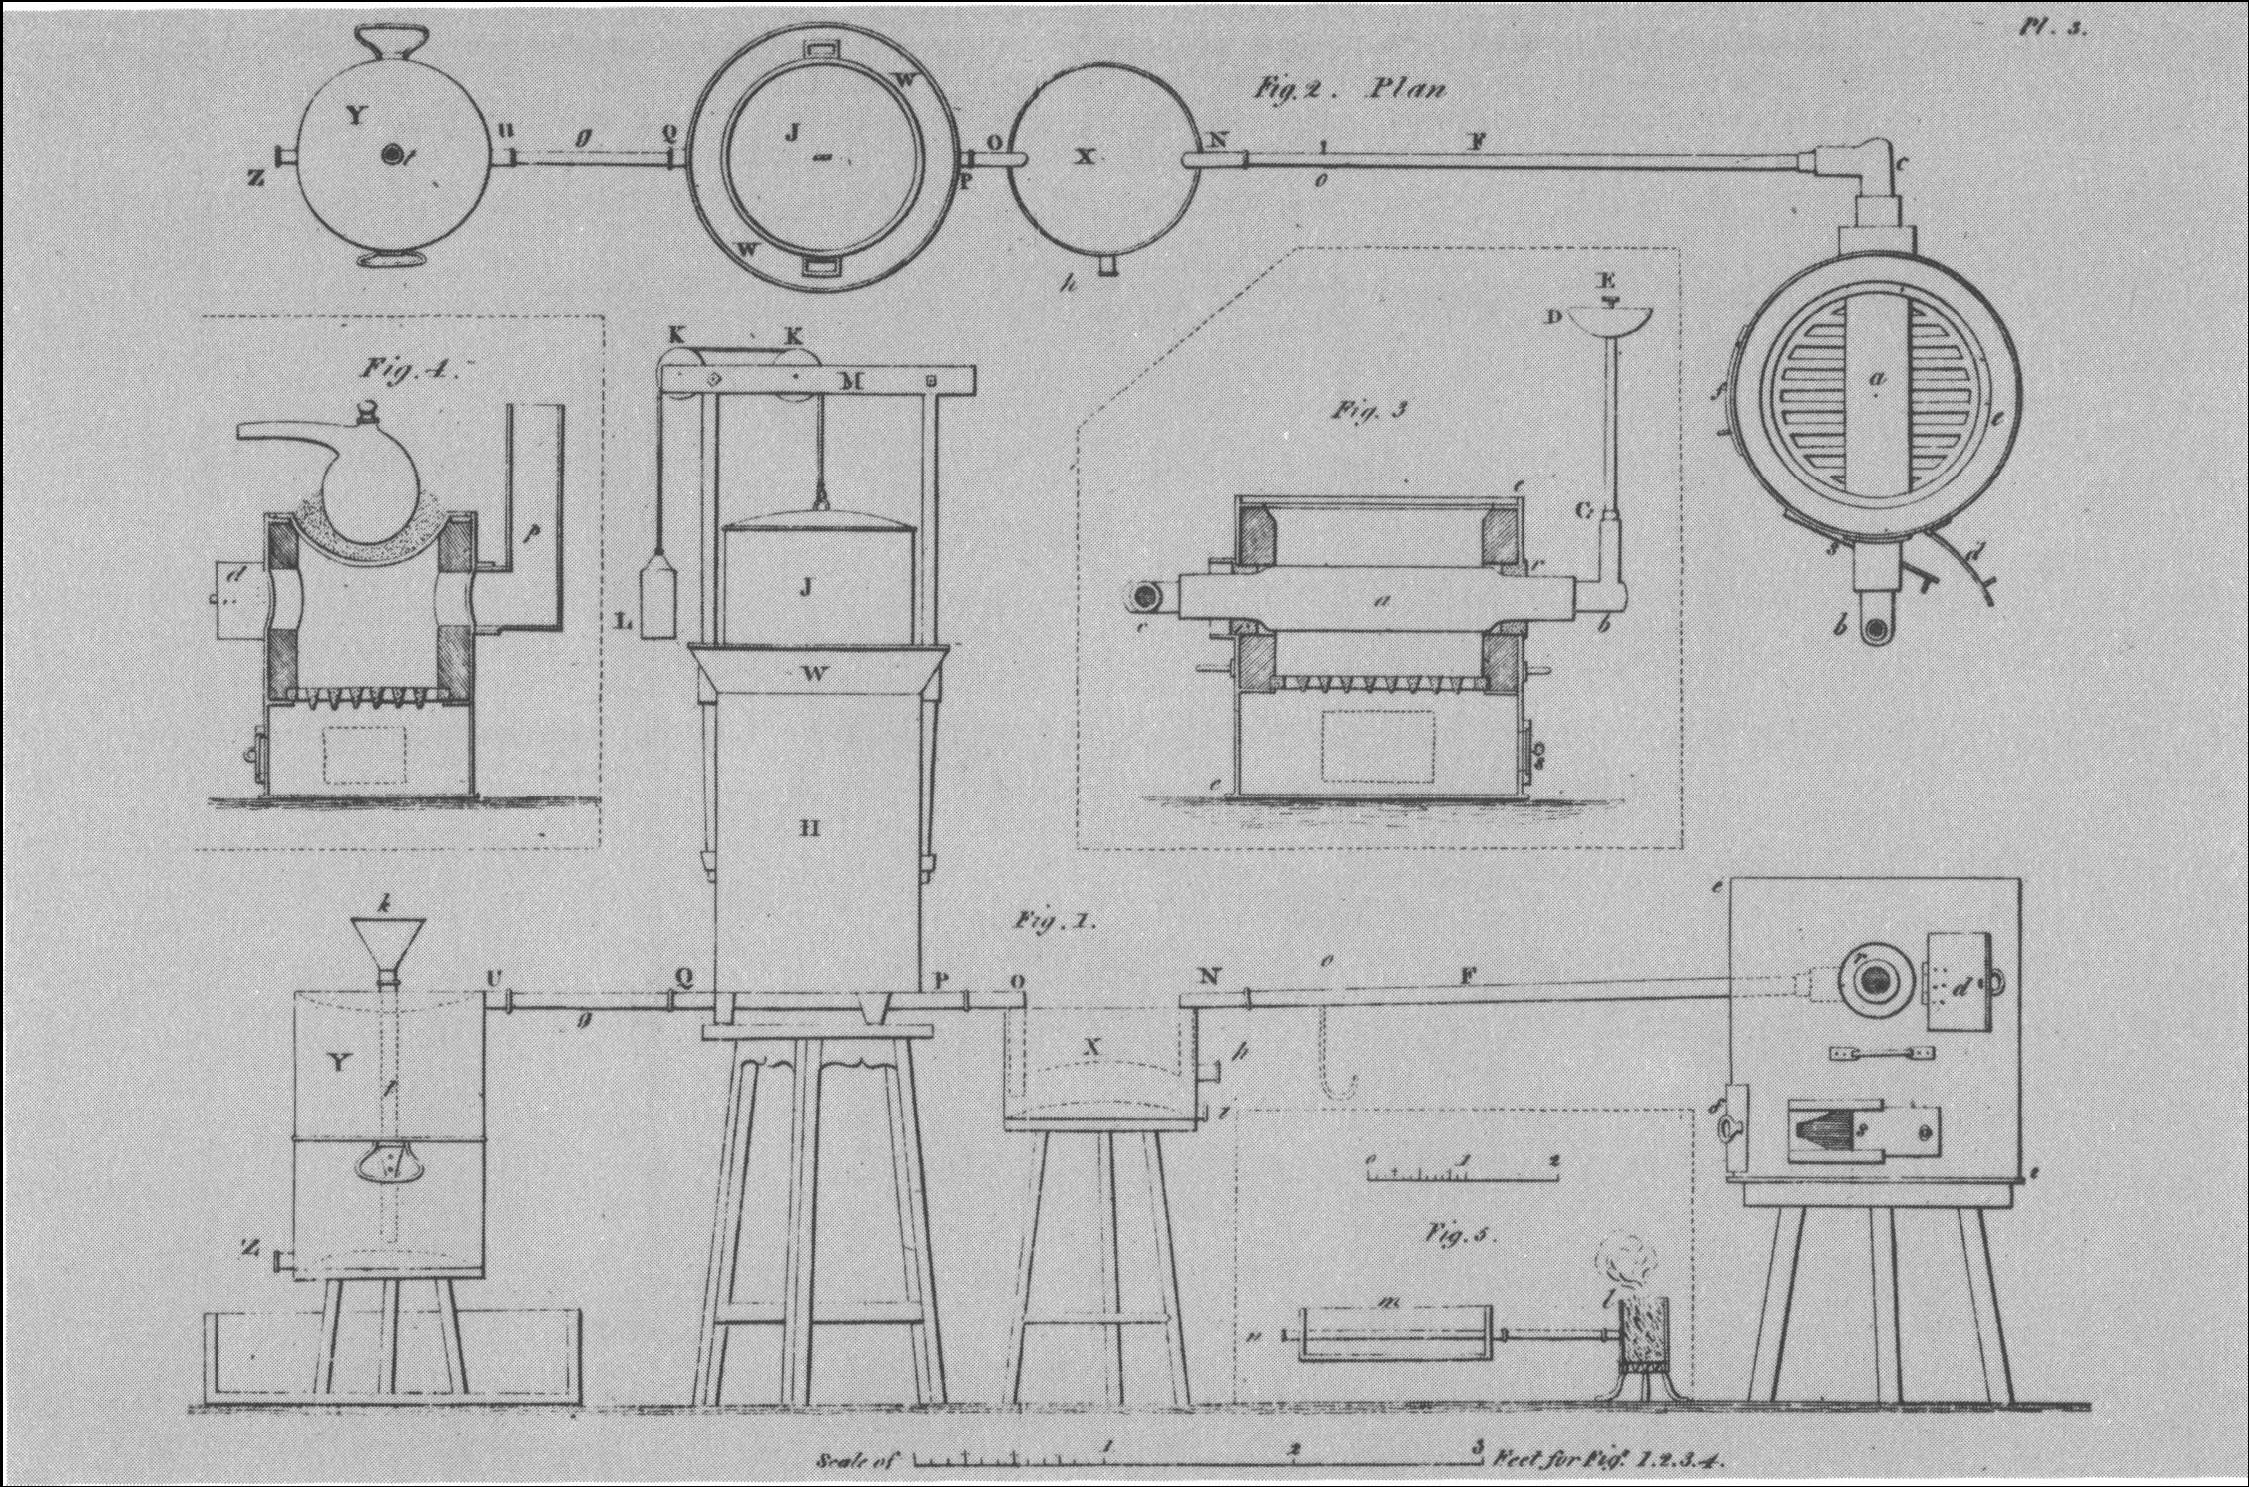 Scientific apparatus designed by Boulton and Watt in preparation of the Pneumatic Institution in Bristol